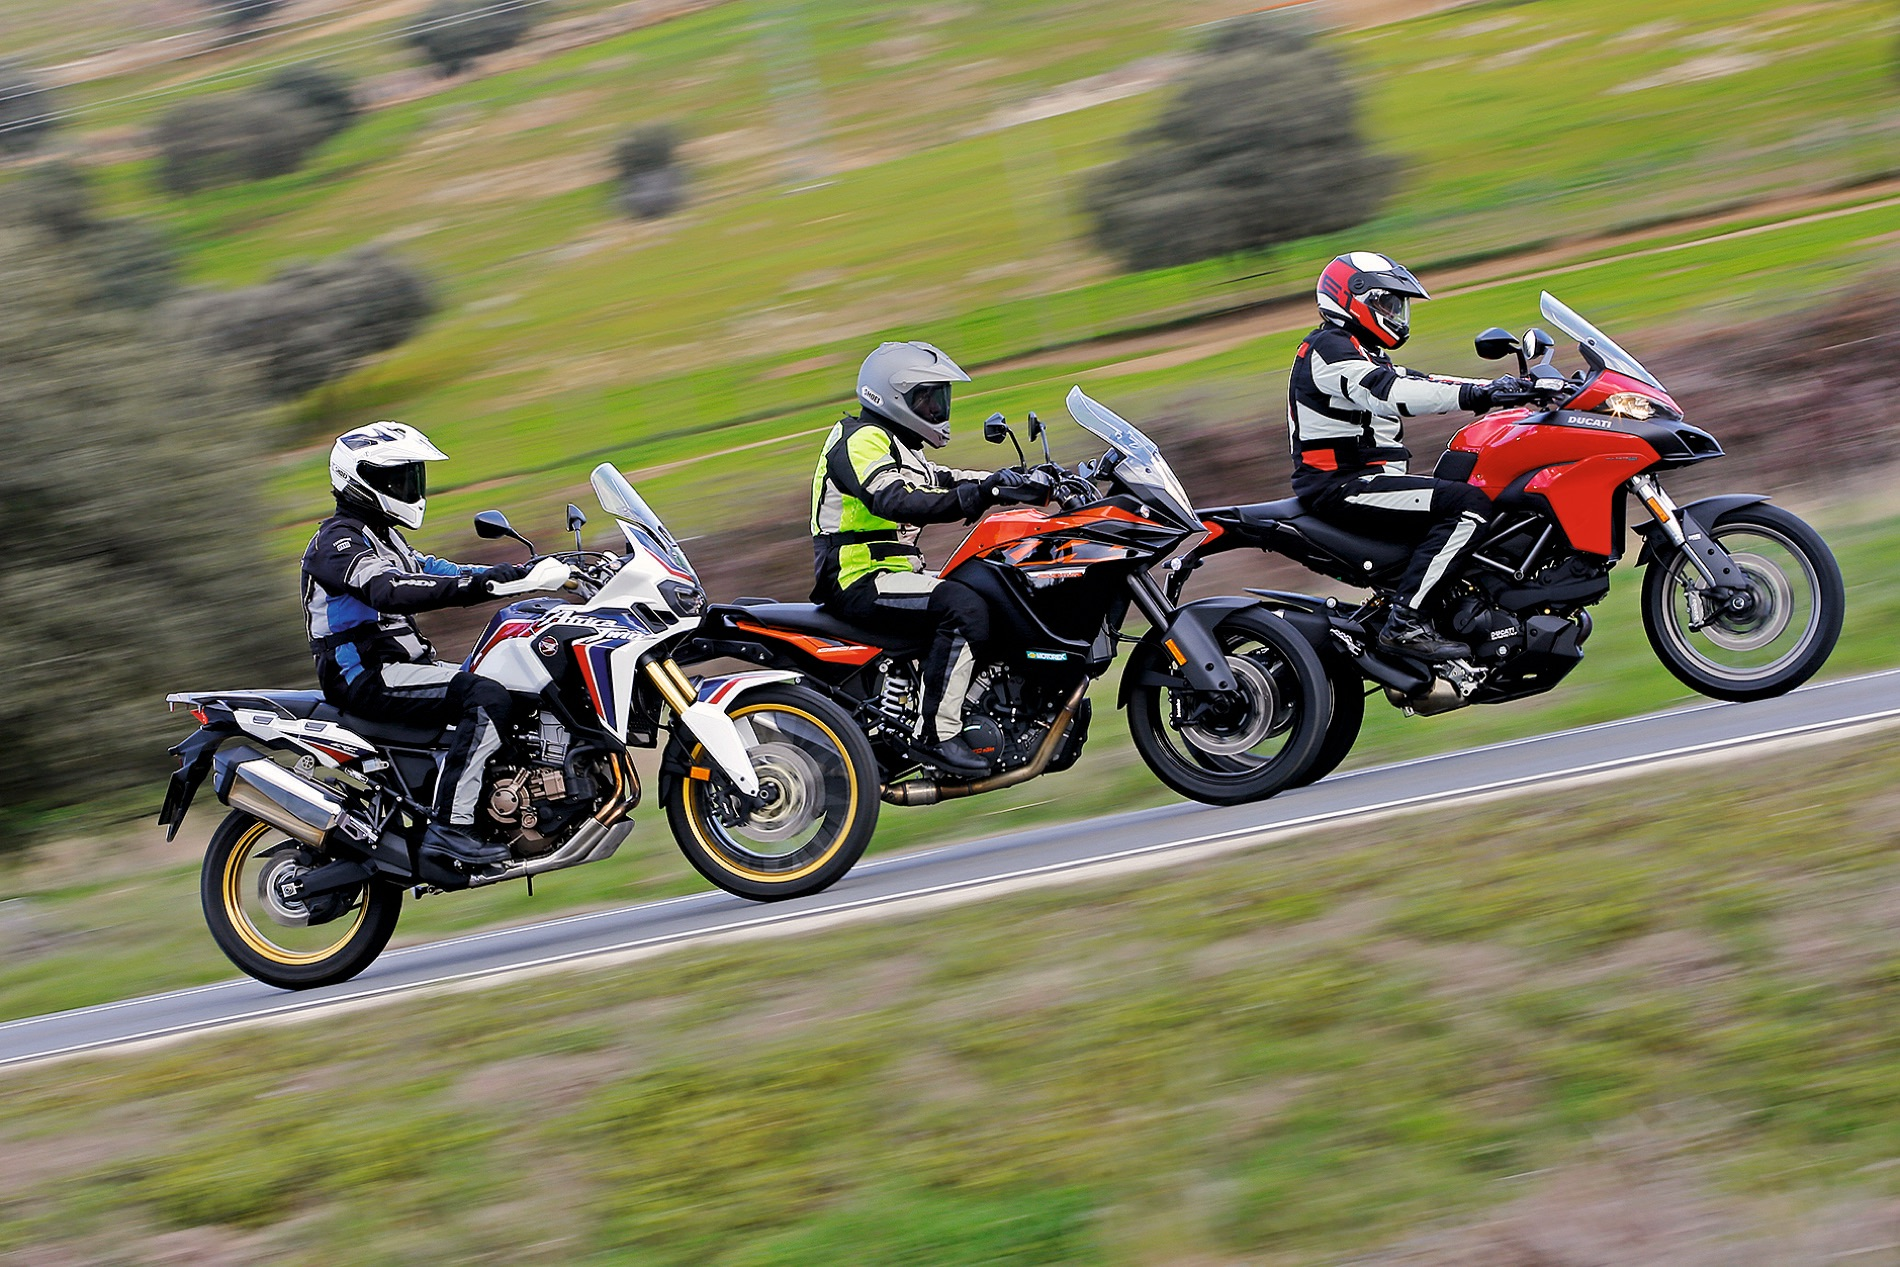 Comparativa trail: Honda Africa Twin vs Ducati Multistrada 950 vs KTM 1090 Adventure